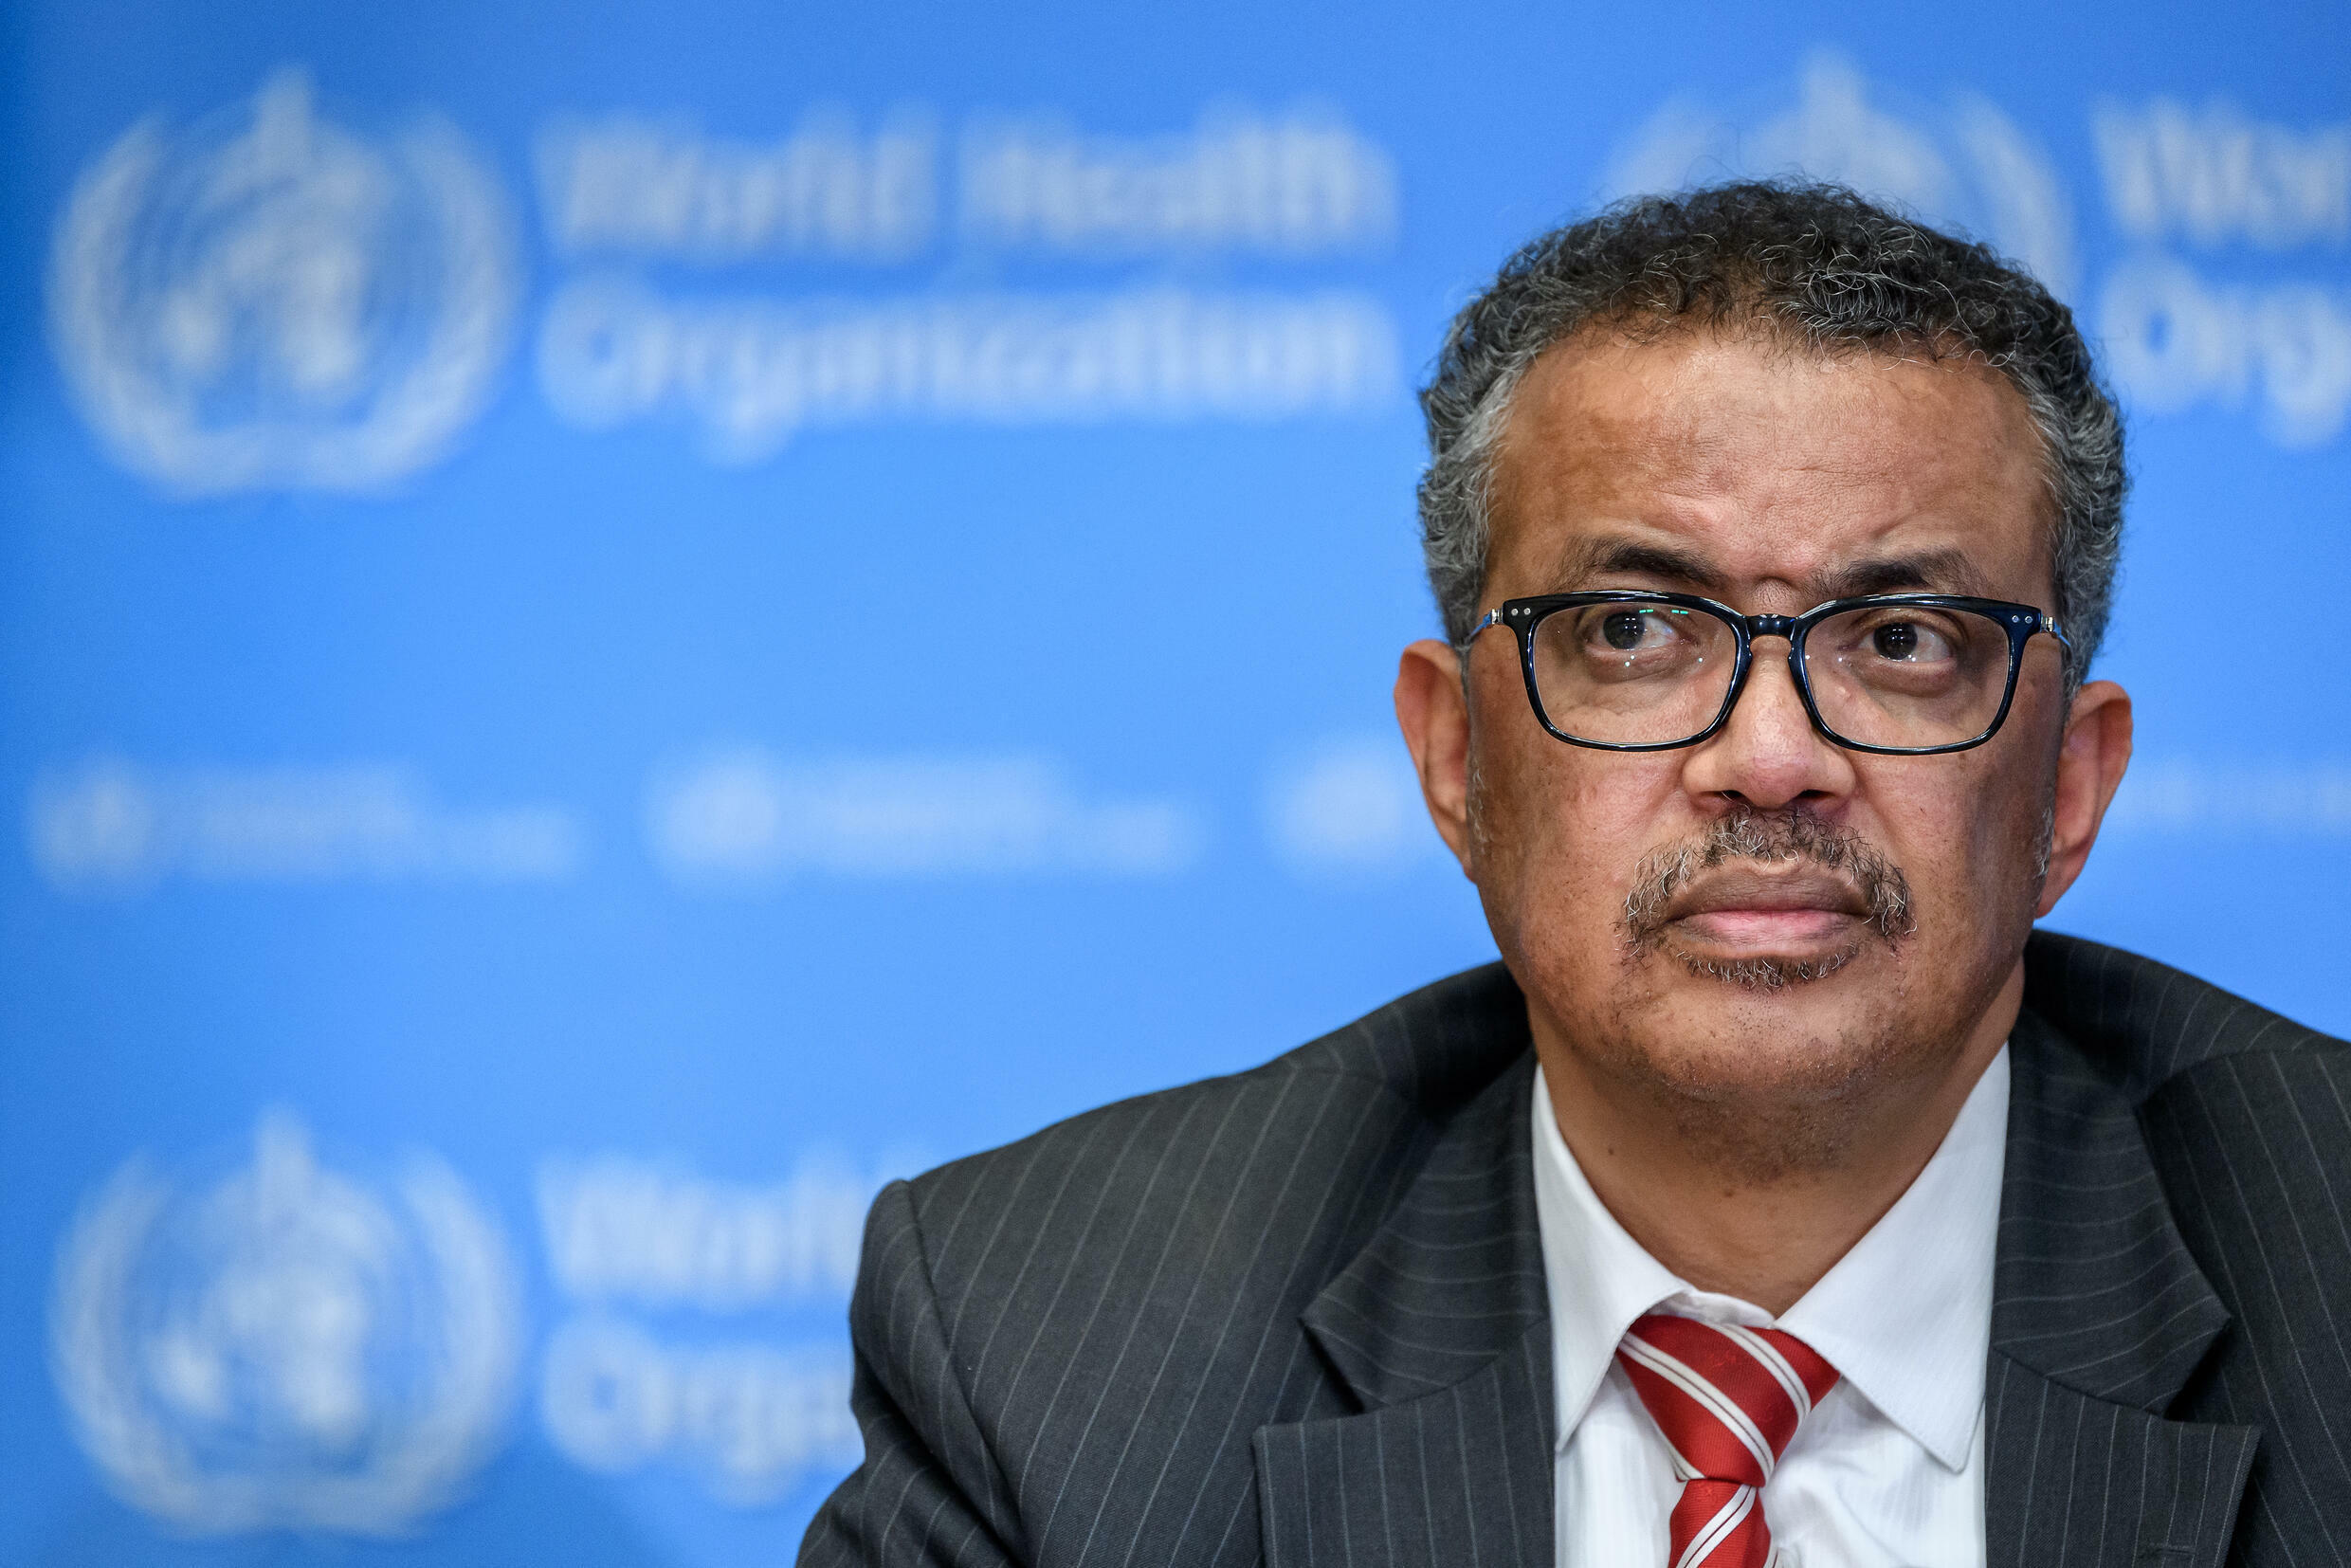 The first African to head the powerful UN agency, Tedros has been on the front line since the start of the Covid-19 crisis